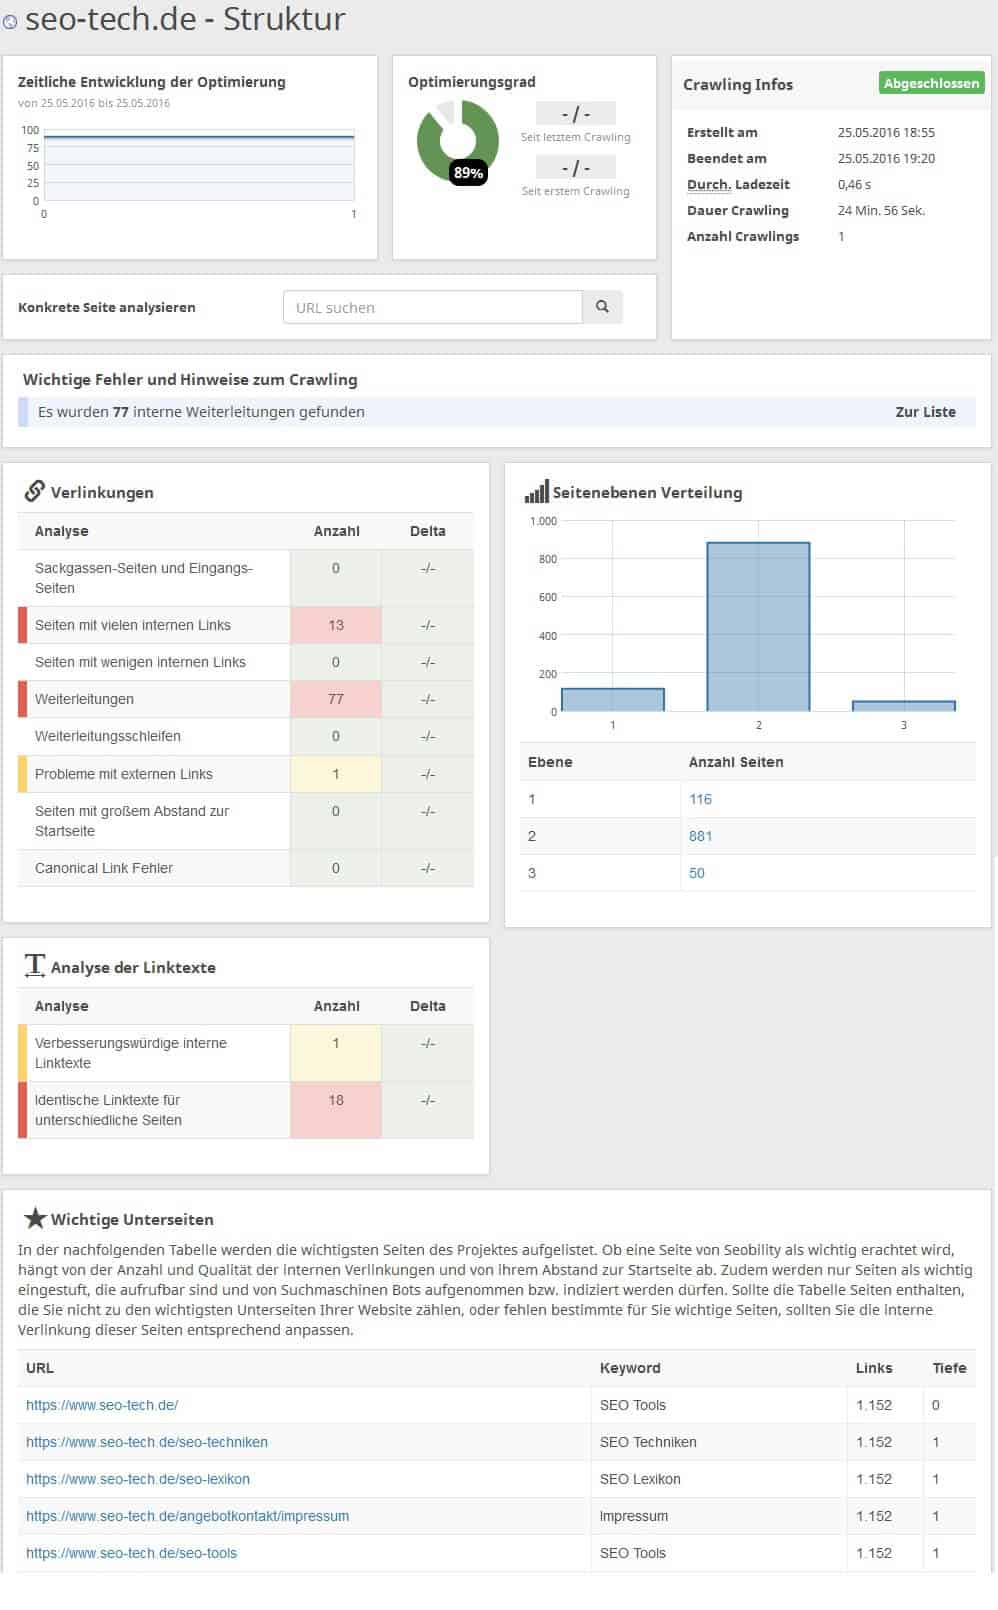 seobility Struktur Analyse by seo-tech.de